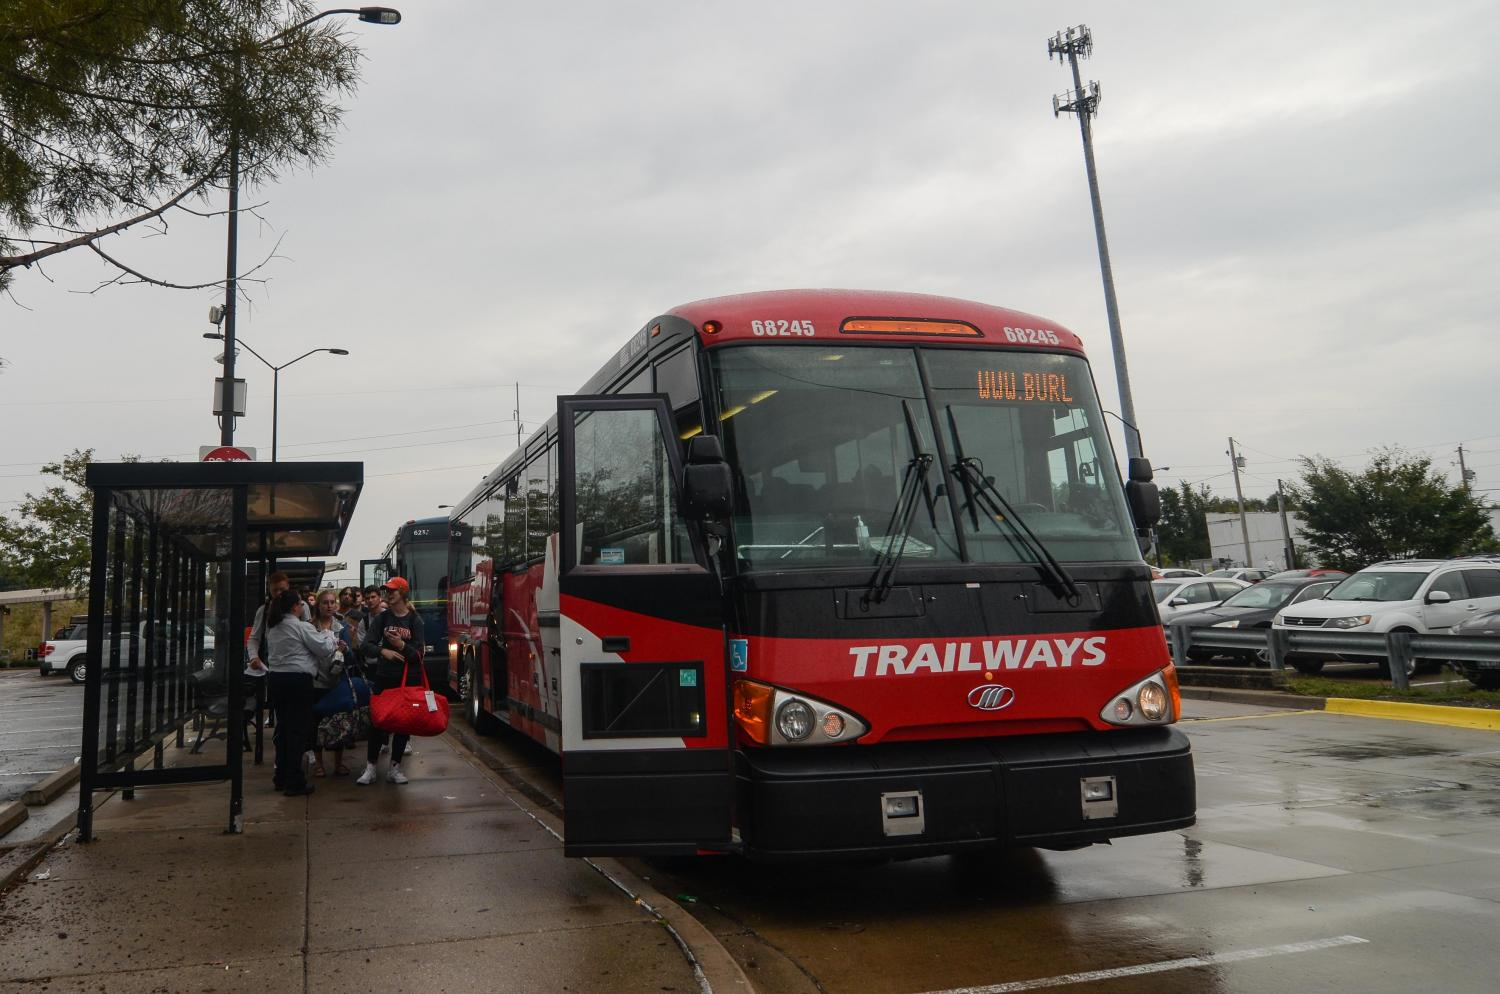 Students board a bus on Friday, Oct. 6 at the Illinois Terminal. Illini Terminal is a frequent place for students to catch a bus to travel home.